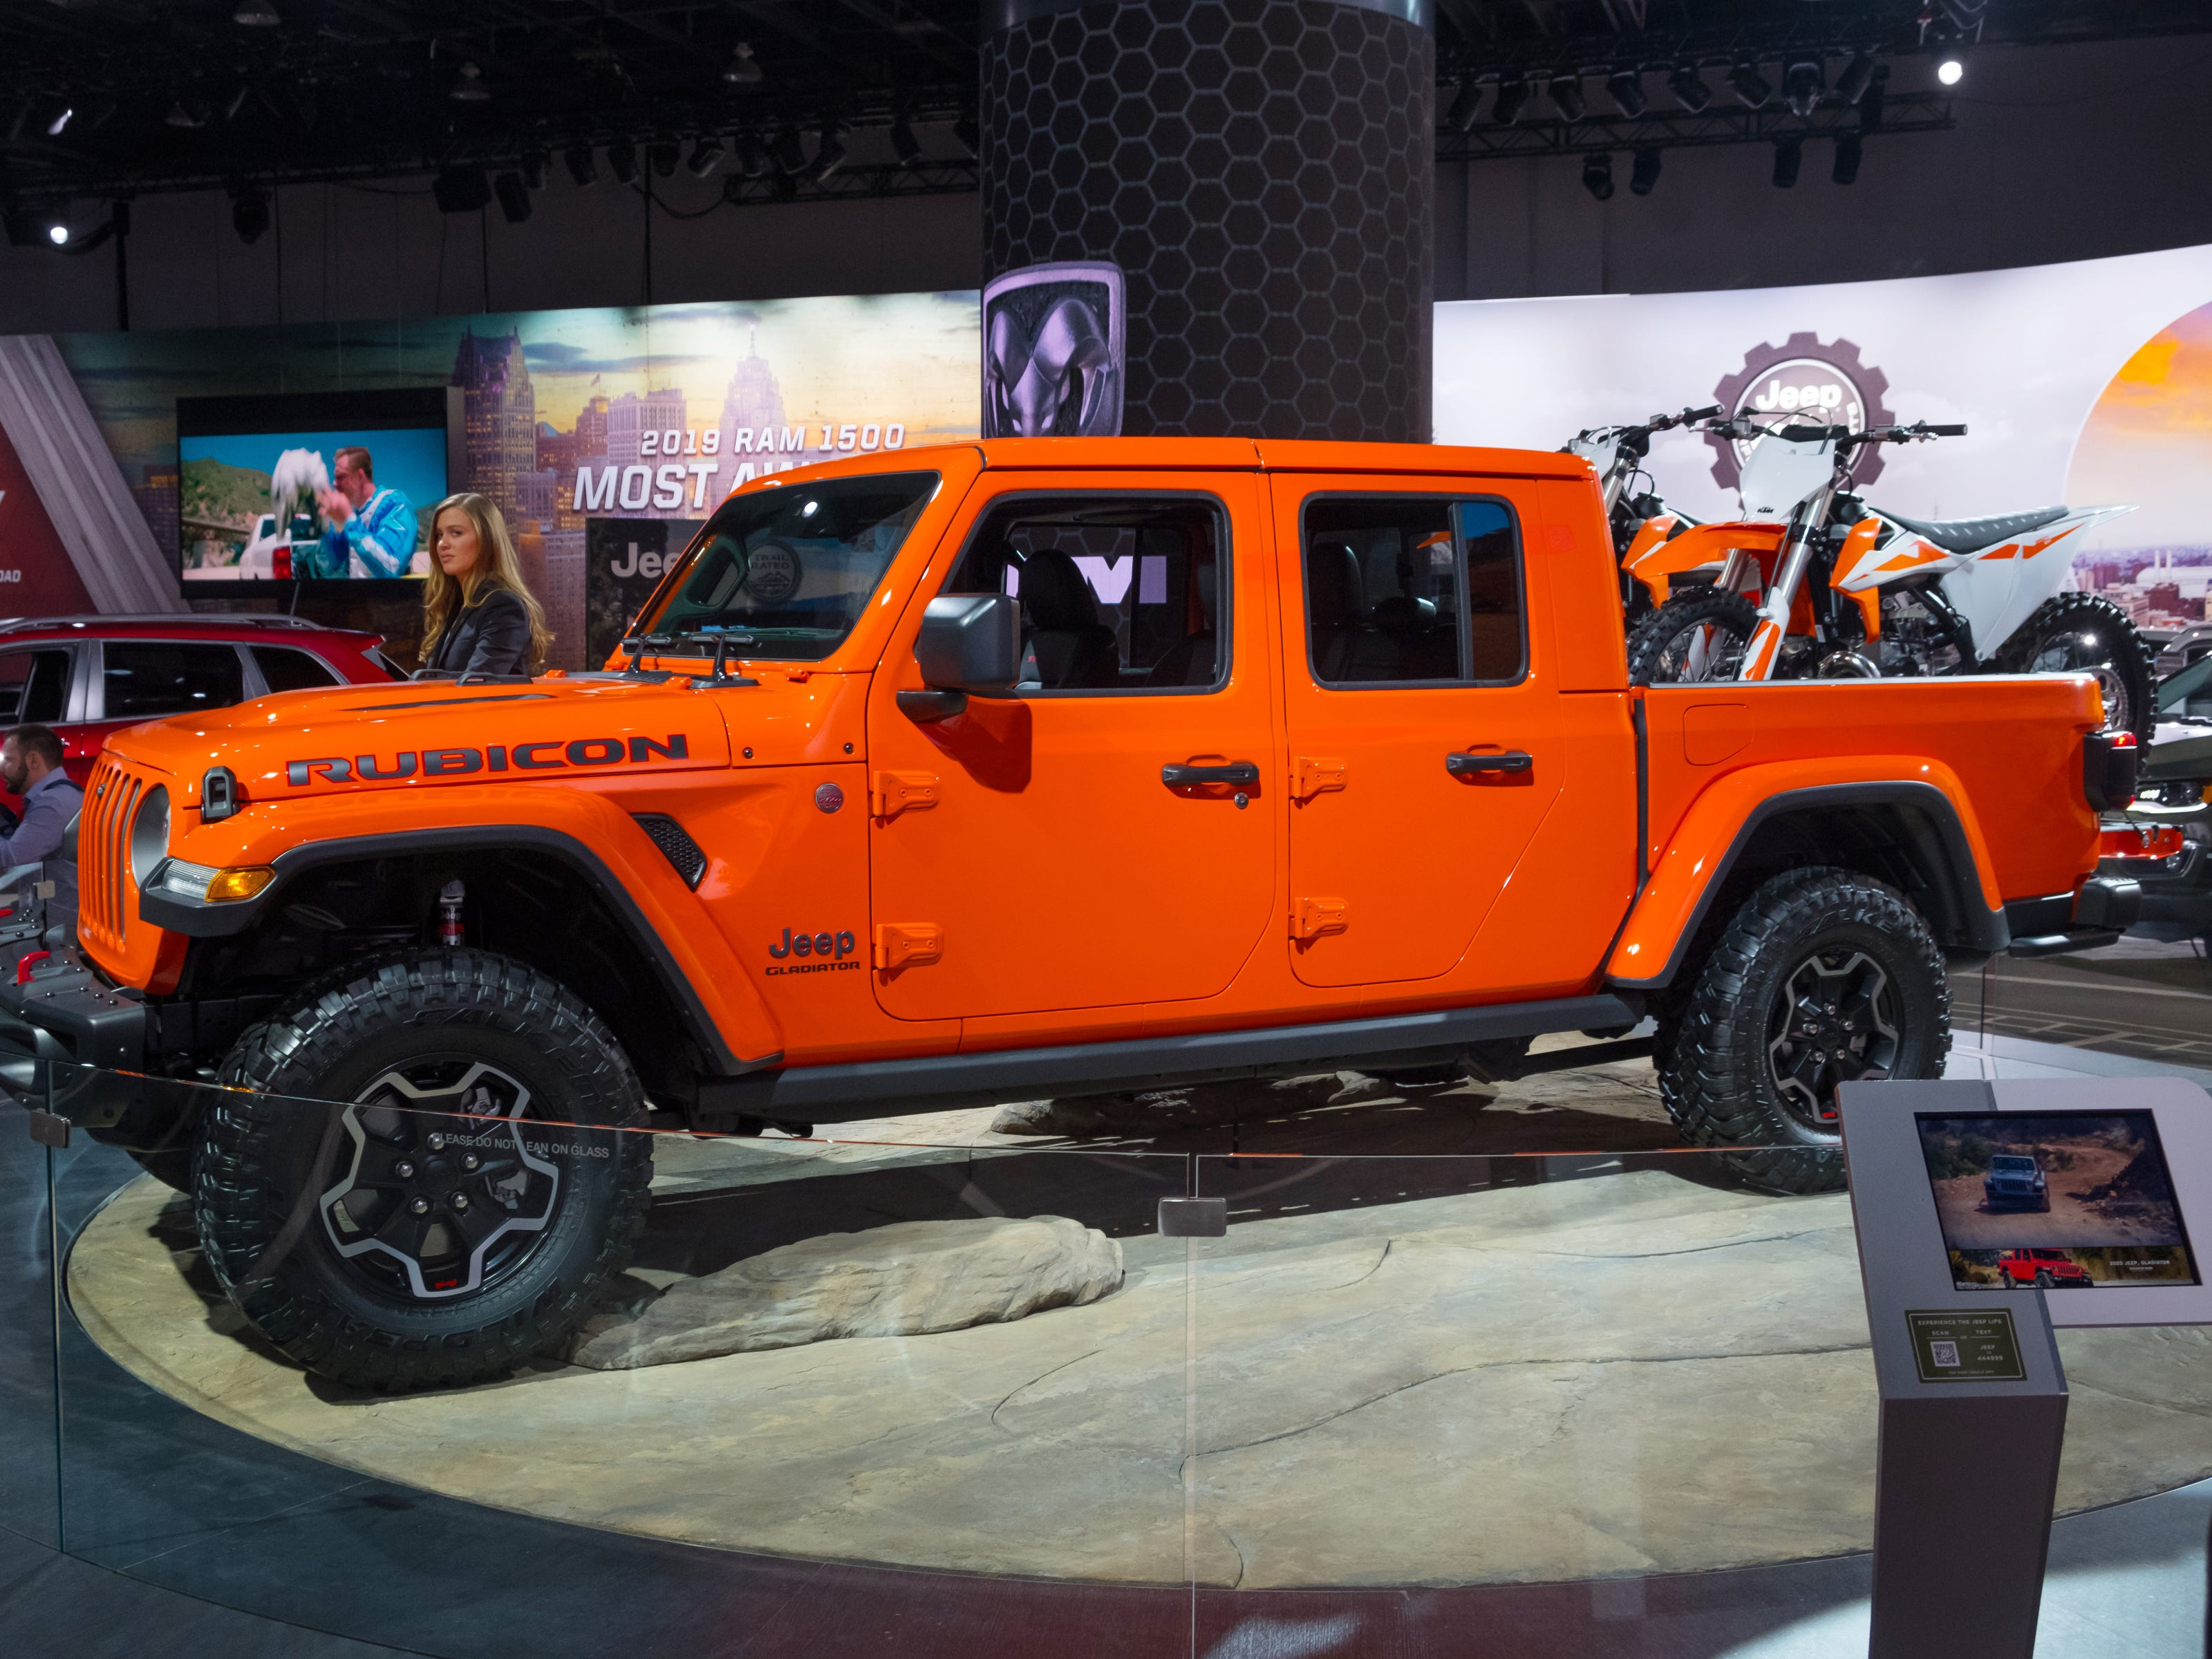 A 2020 Jeep Gladiator sits on the stage during the 2019 North American International Auto Show held at Cobo Center in downtown Detroit on Tuesday, Jan. 15, 2019.  (Via OlyDrop)